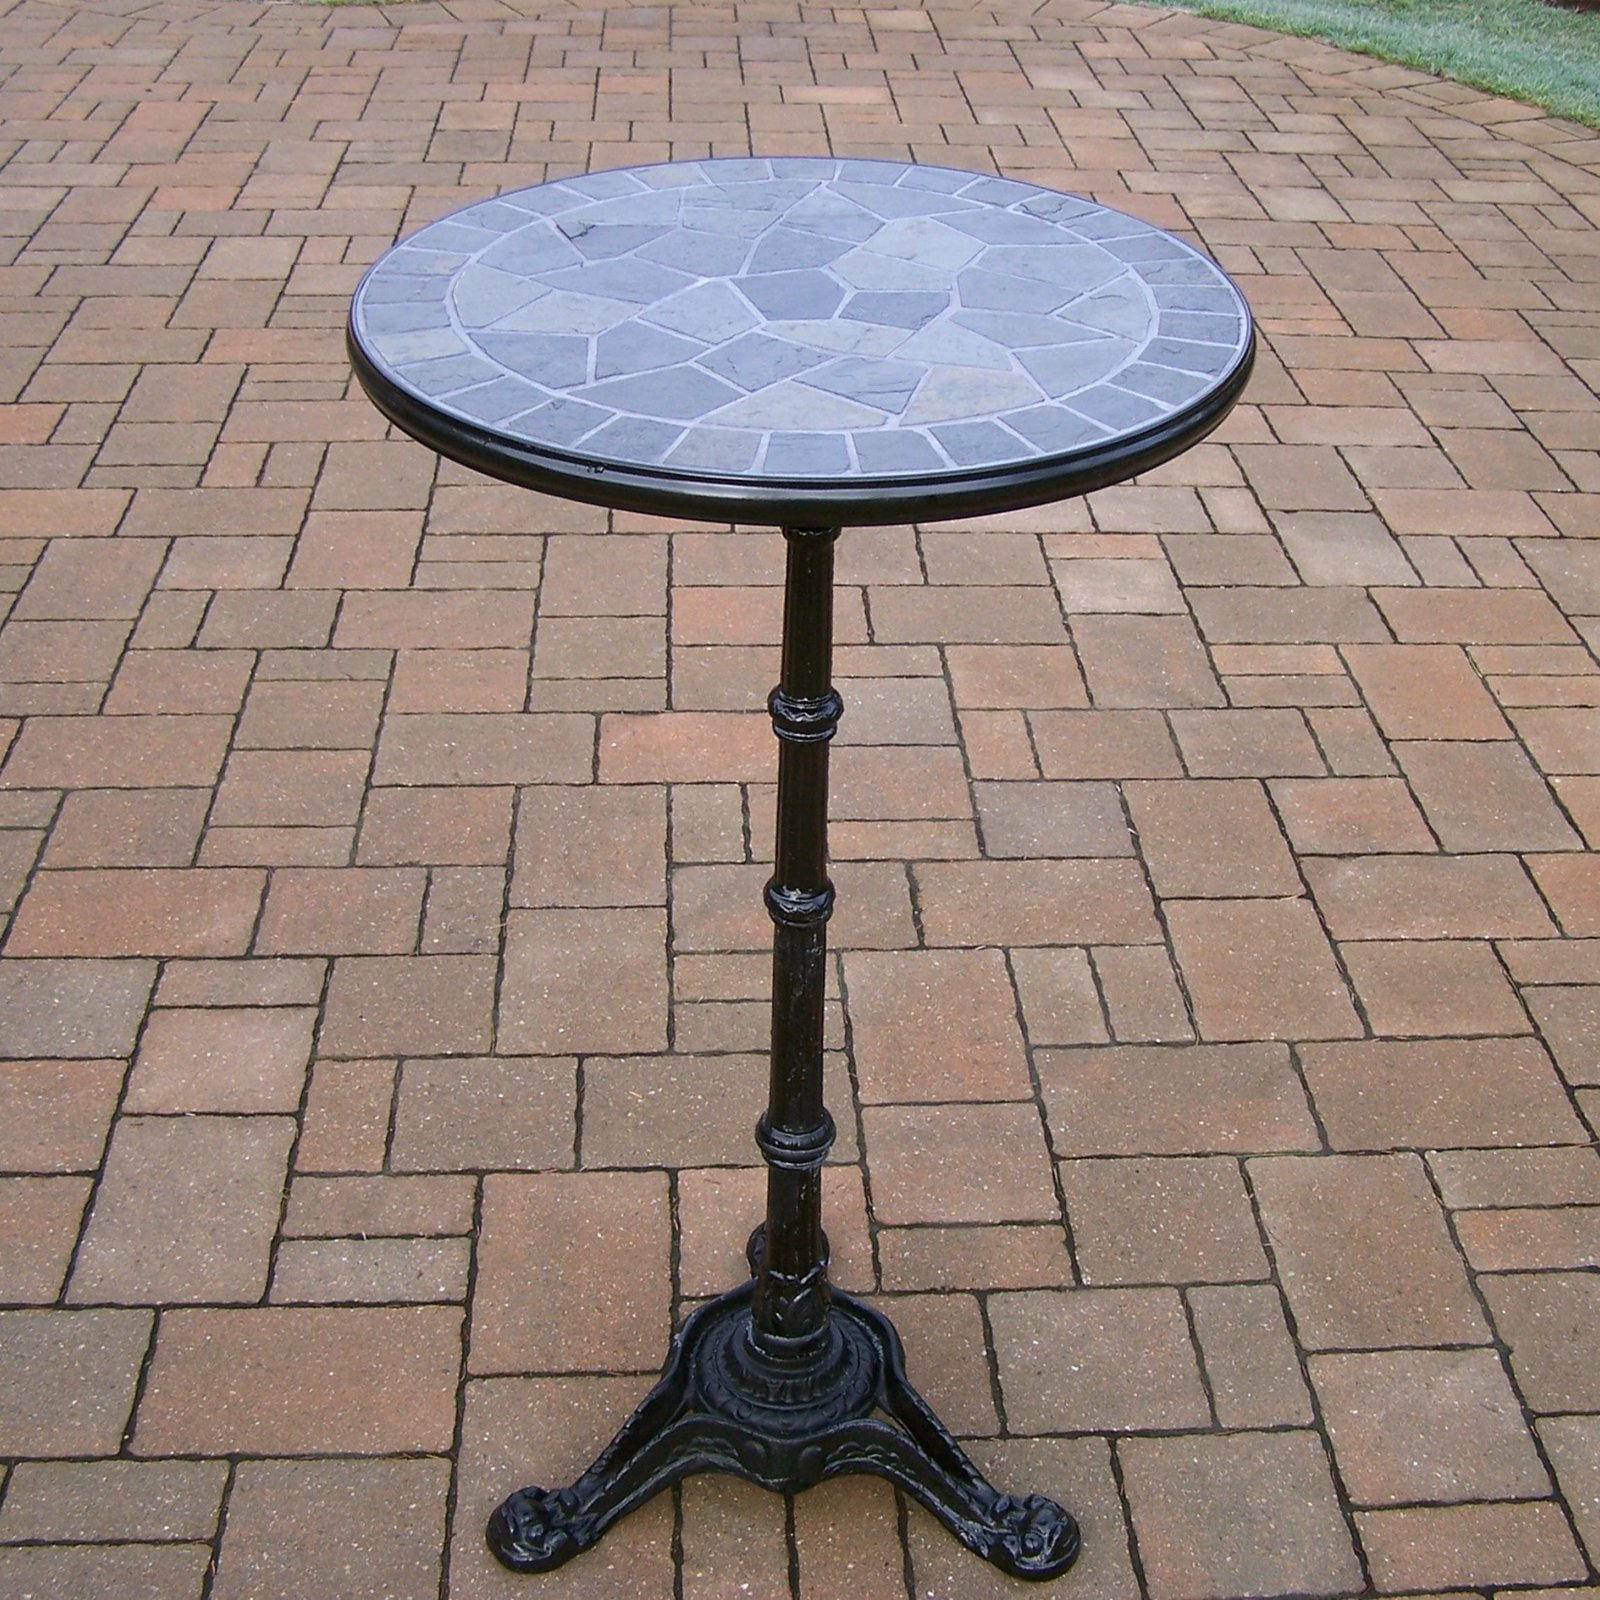 Oakland Living Stone Art Bar Height Patio Dining Table